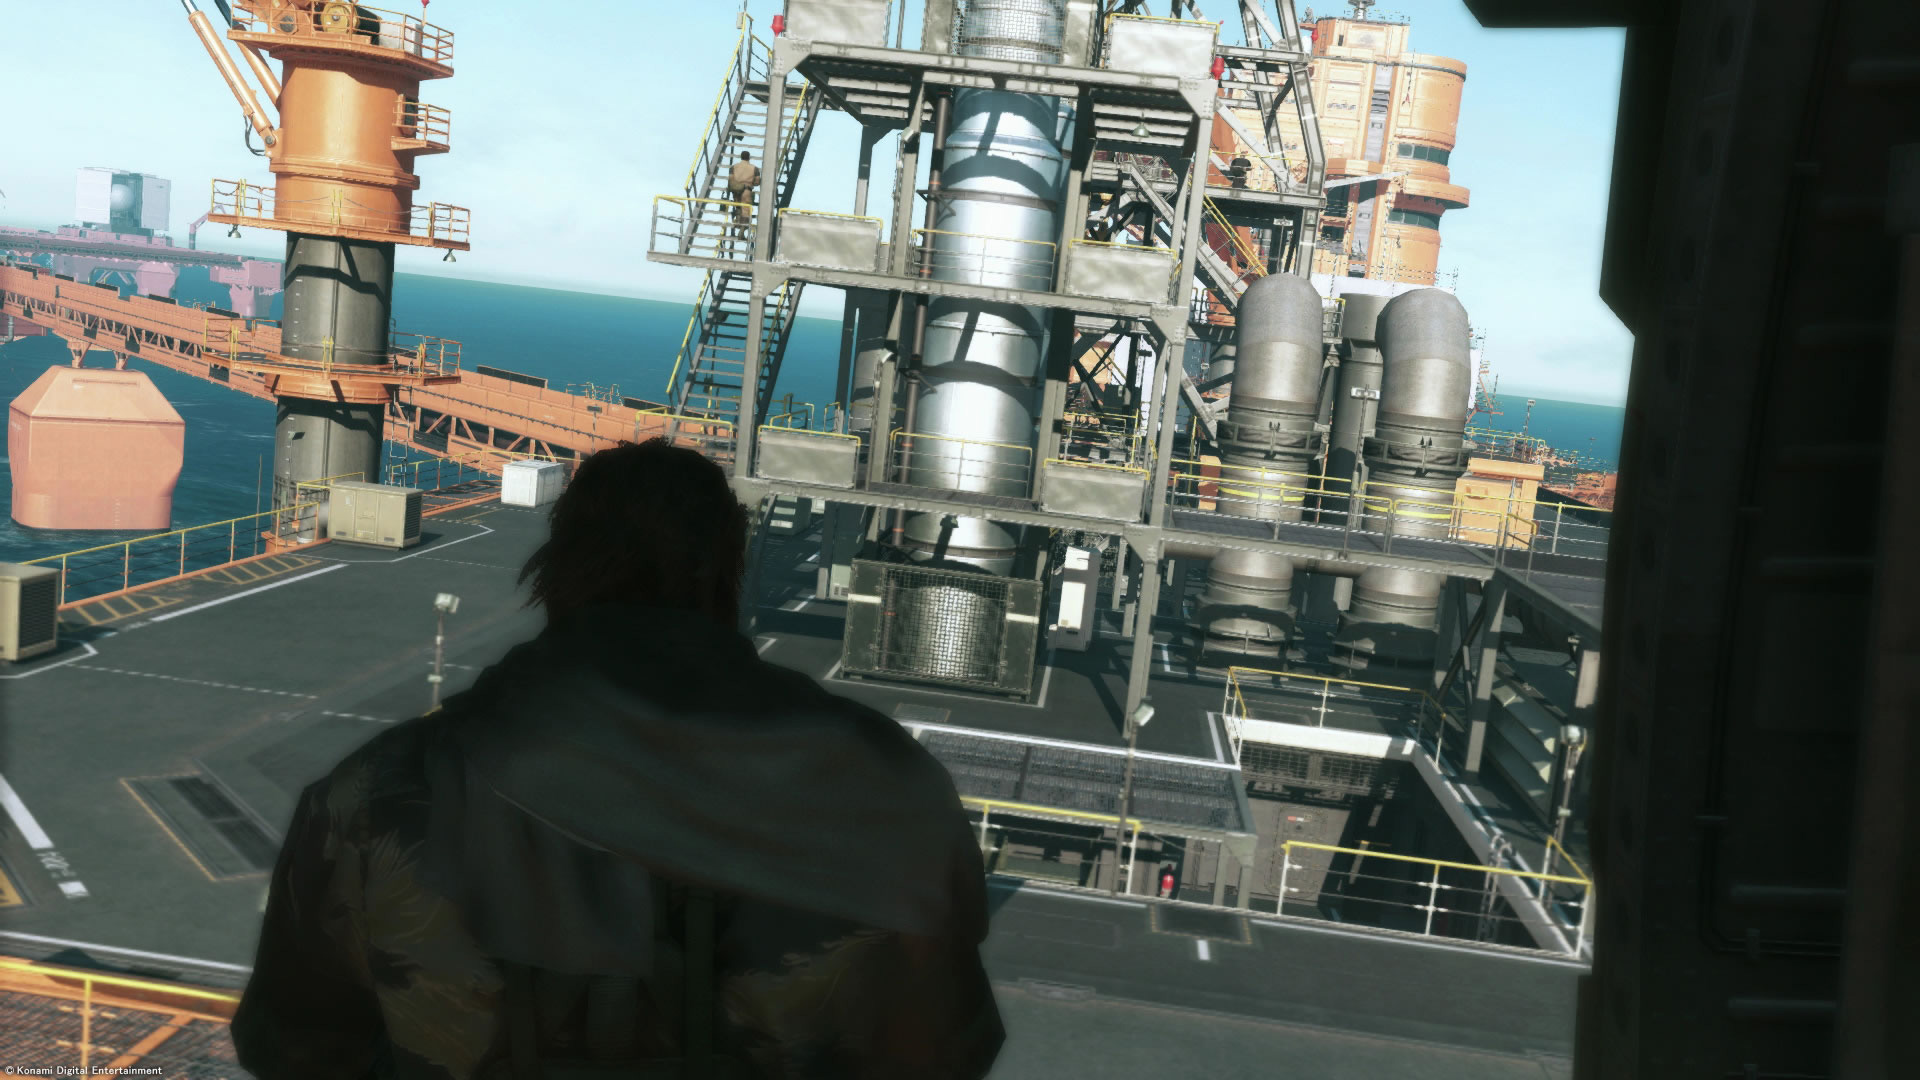 Metal-Gear-Solid-V-The-Phantom-Pain-Screenshot-Gamescom-2015-3